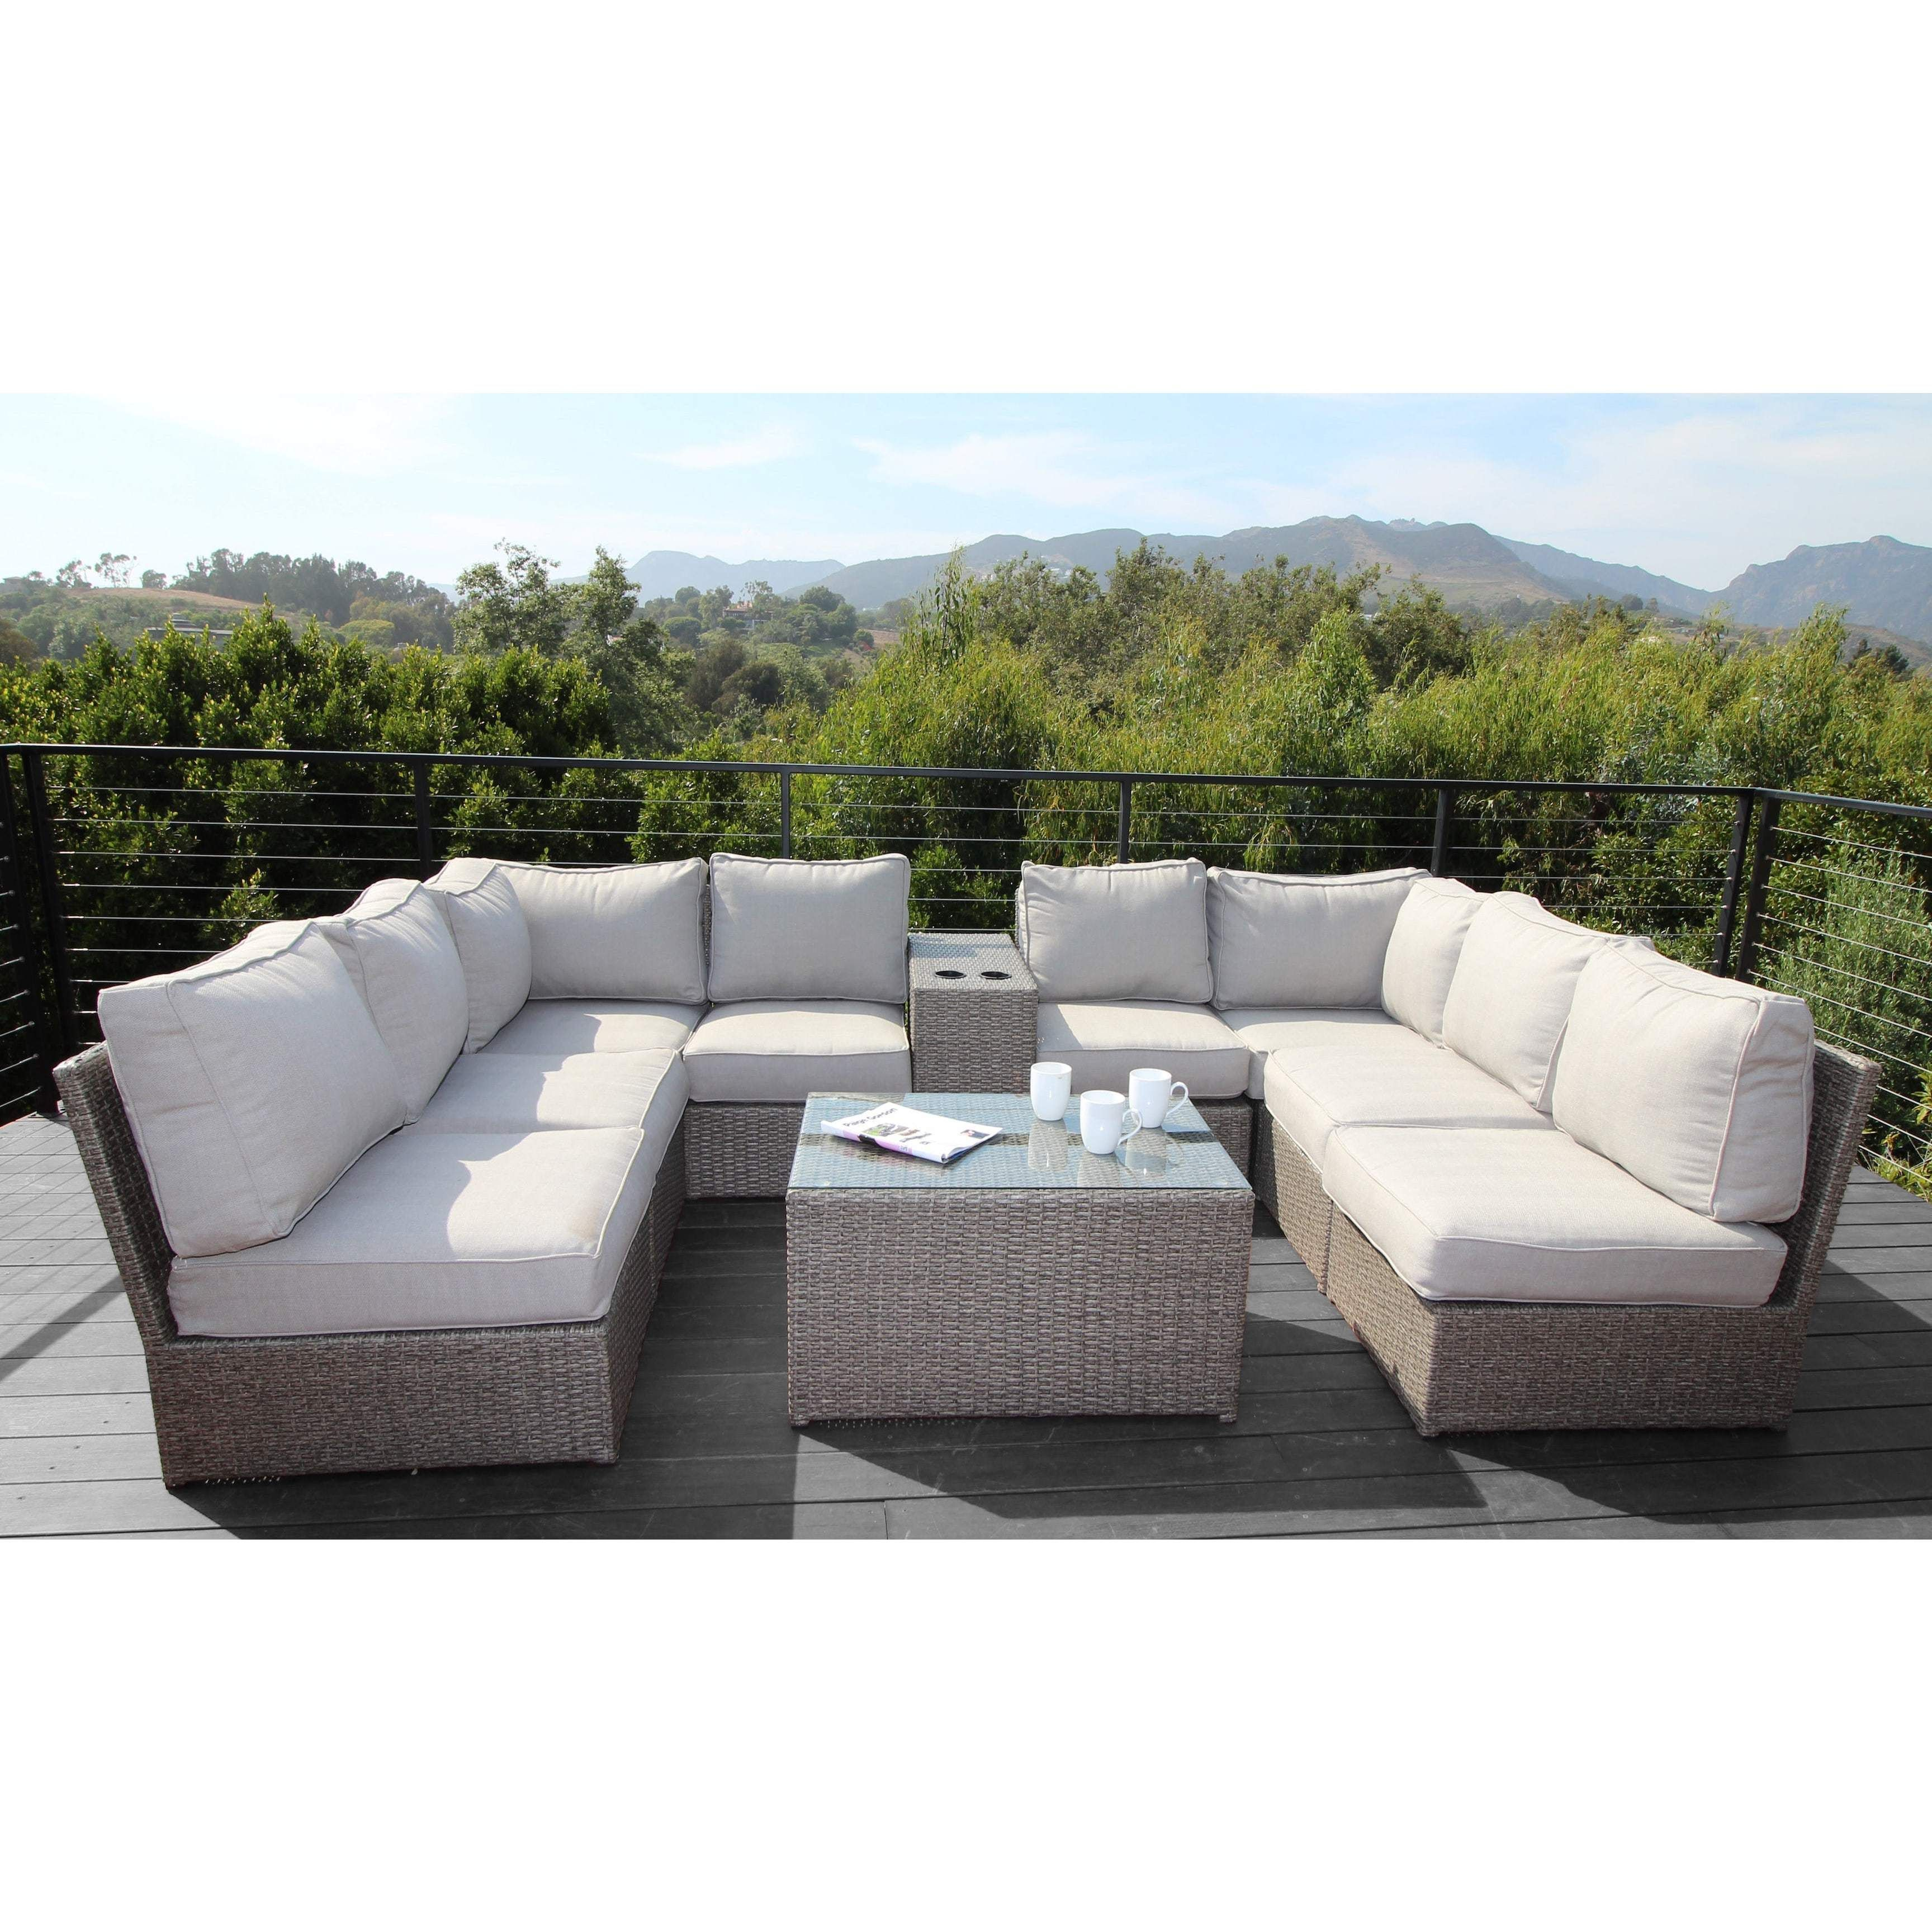 Living Source International Chelsea 10 Piece Cup Table Sectional